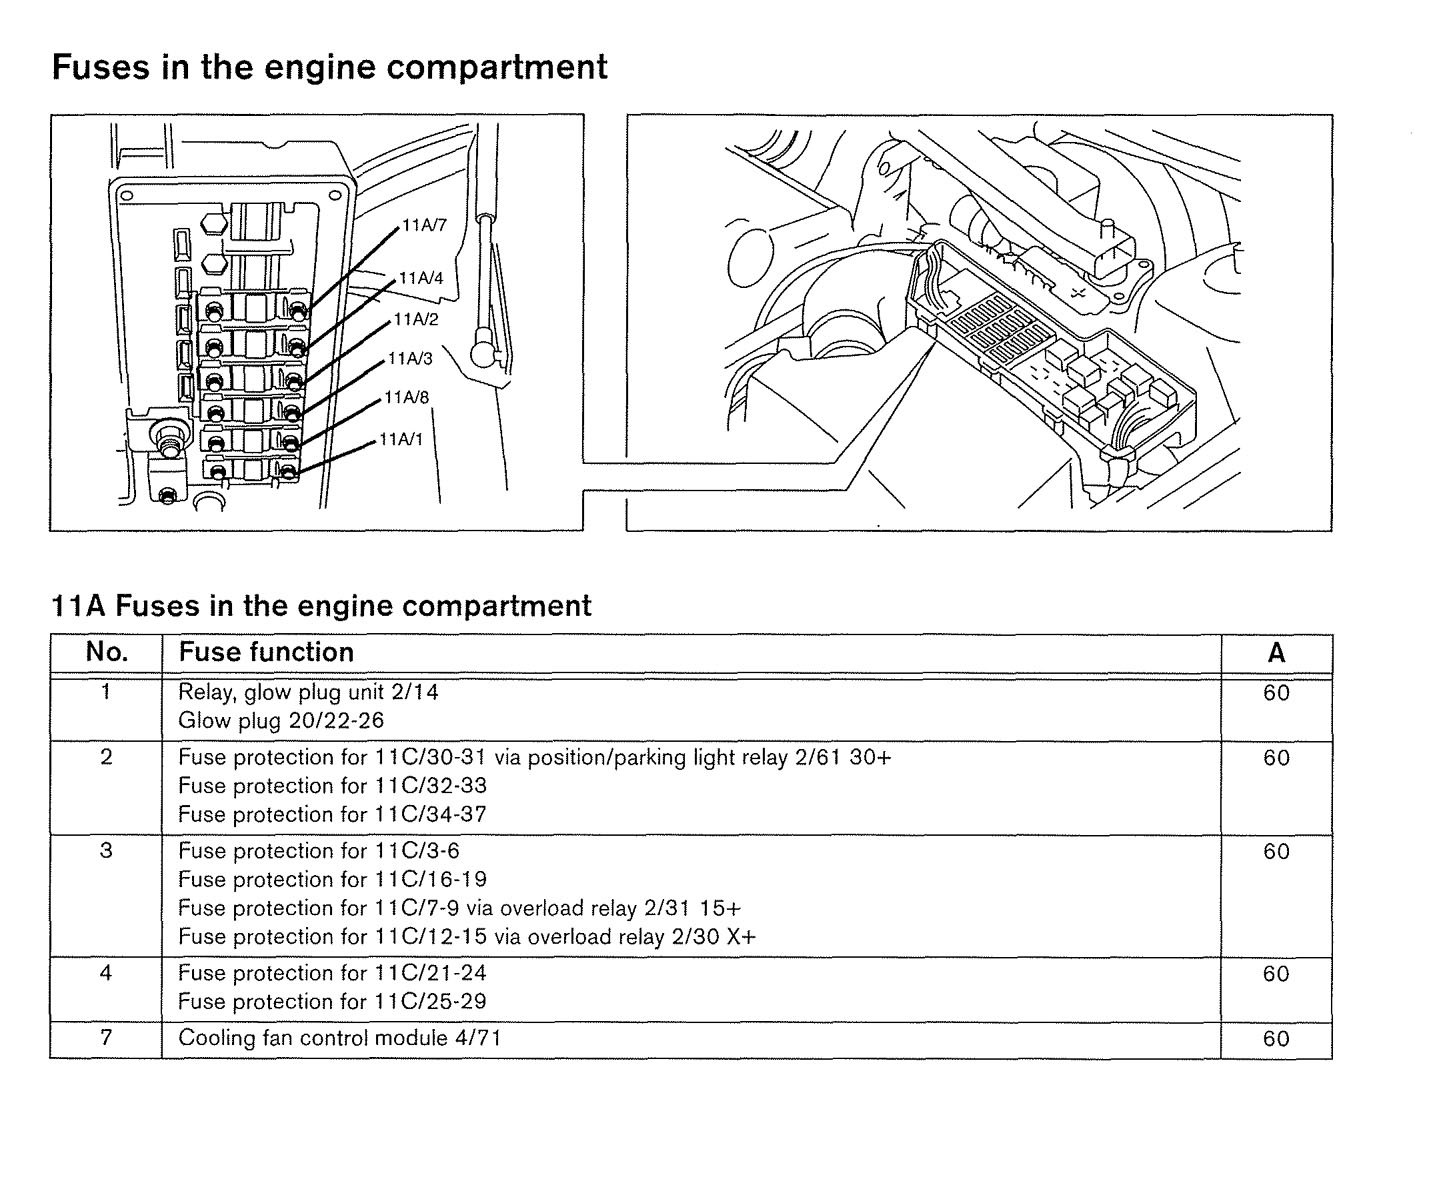 1998 Volvo S70 Ac Wiring Diagram | Wiring Schematic Diagram ... on volvo 850 suspension, volvo 850 shop manual, volvo ignition wiring diagram, mercedes e320 wiring diagram, dodge omni wiring diagram, volvo amazon wiring diagram, pontiac trans sport wiring diagram, chrysler crossfire wiring diagram, bmw e90 wiring diagram, porsche cayenne wiring diagram, chevrolet volt wiring diagram, volvo 850 water pump, mercury milan wiring diagram, saturn aura wiring diagram, volkswagen golf wiring diagram, chevrolet hhr wiring diagram, honda ascot wiring diagram, geo storm wiring diagram, volkswagen cabrio wiring diagram, mitsubishi starion wiring diagram,